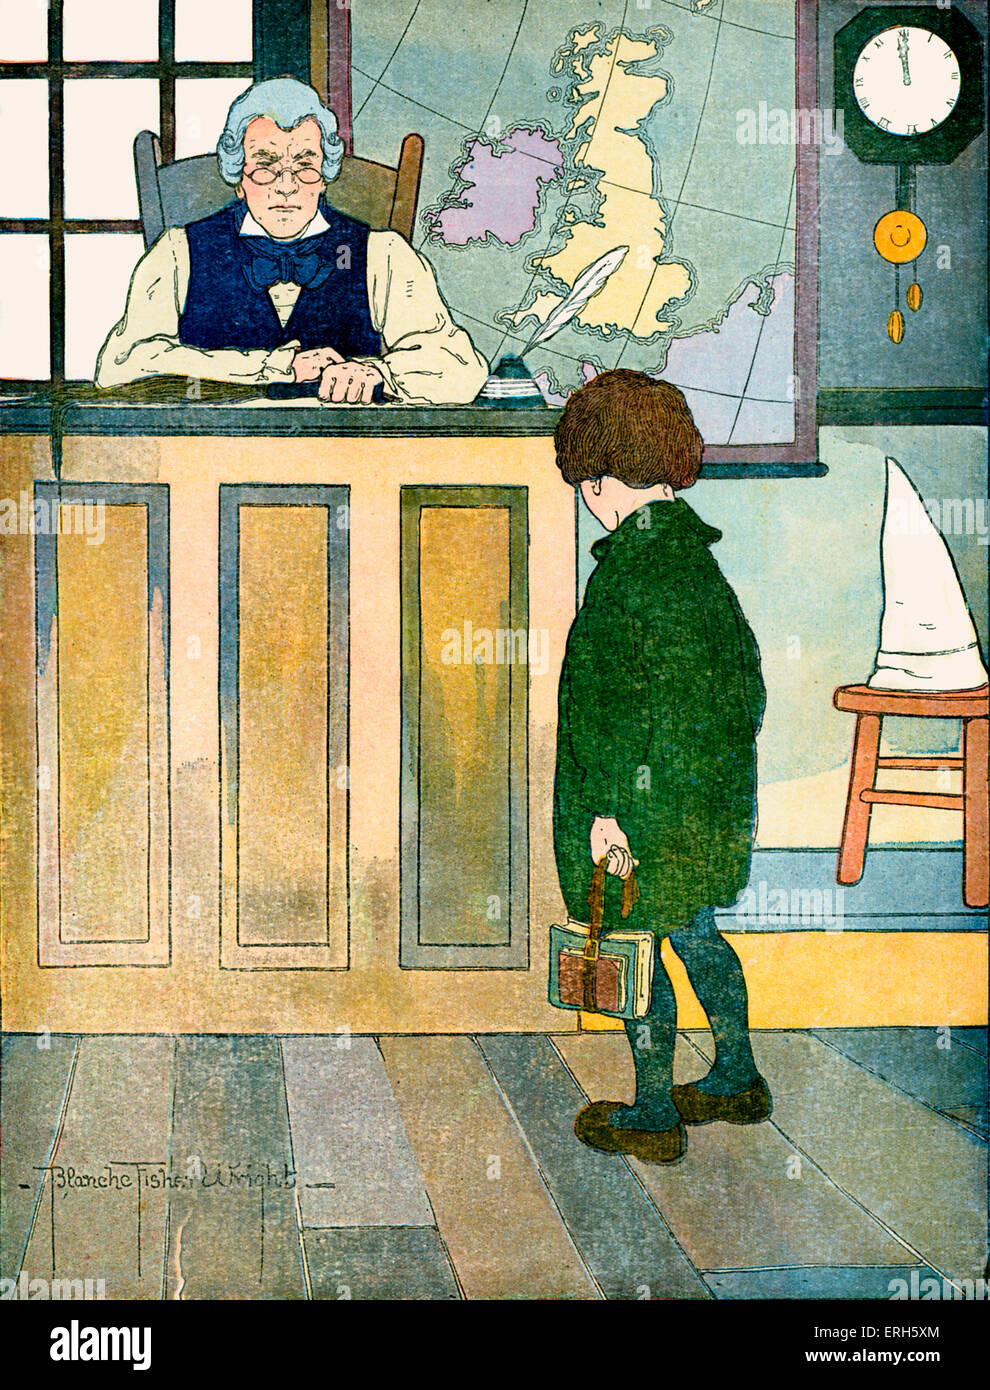 The Ten O'Clock Scholar, illustration by Blanche Fisher Wright (dates unknown), published 1916.  'A diller, - Stock Image